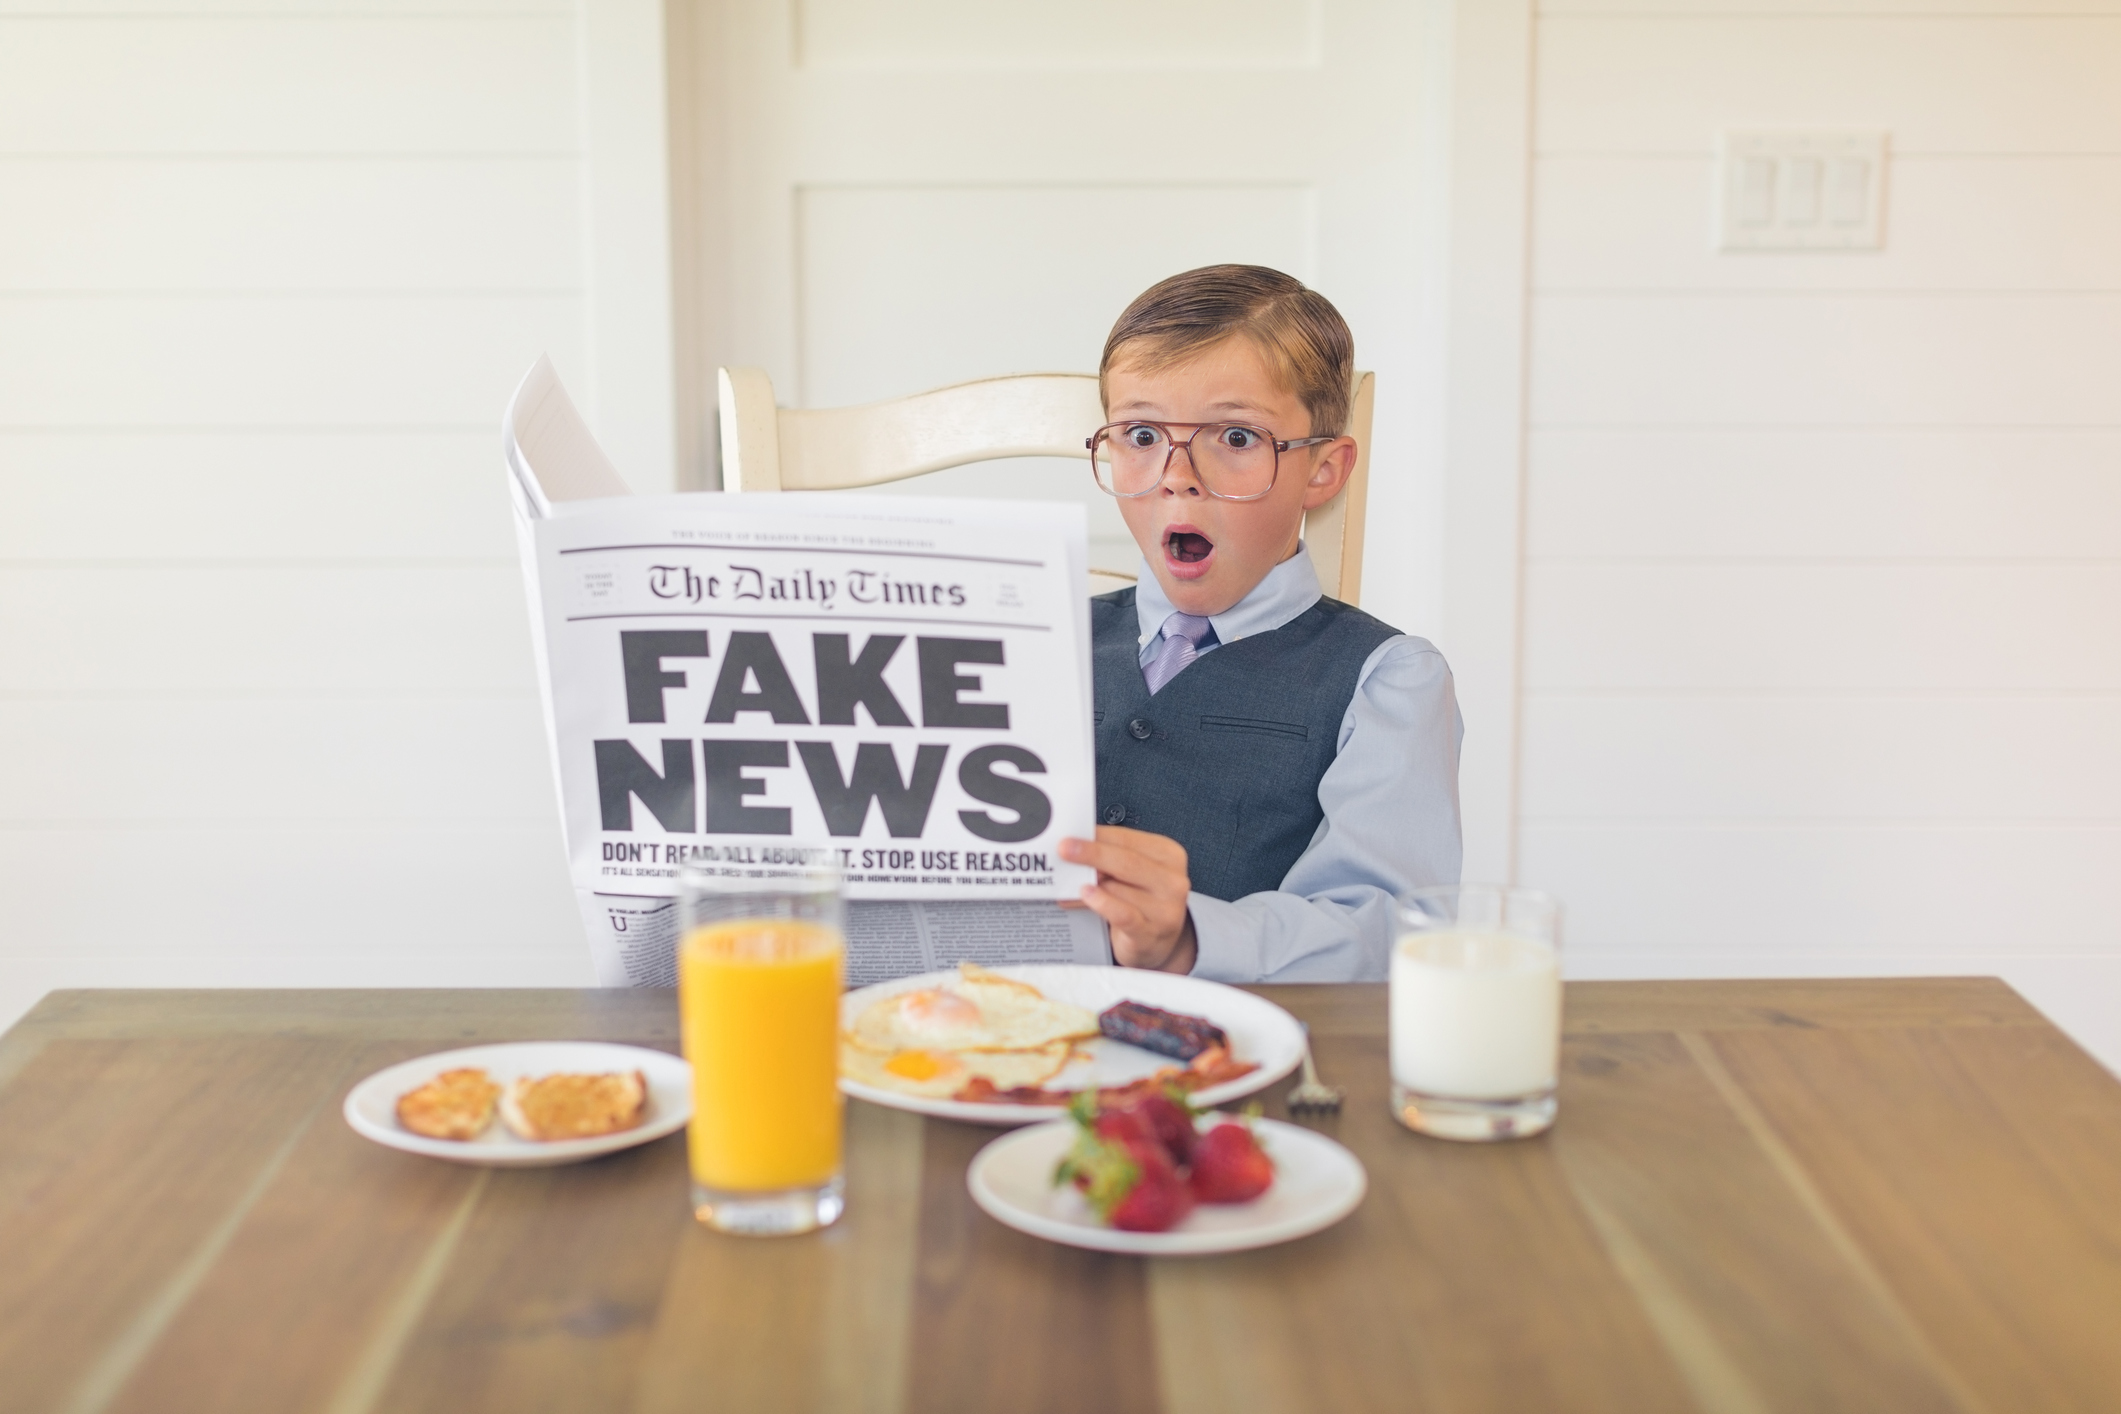 Young Businessman Reading Fake News is Shocked